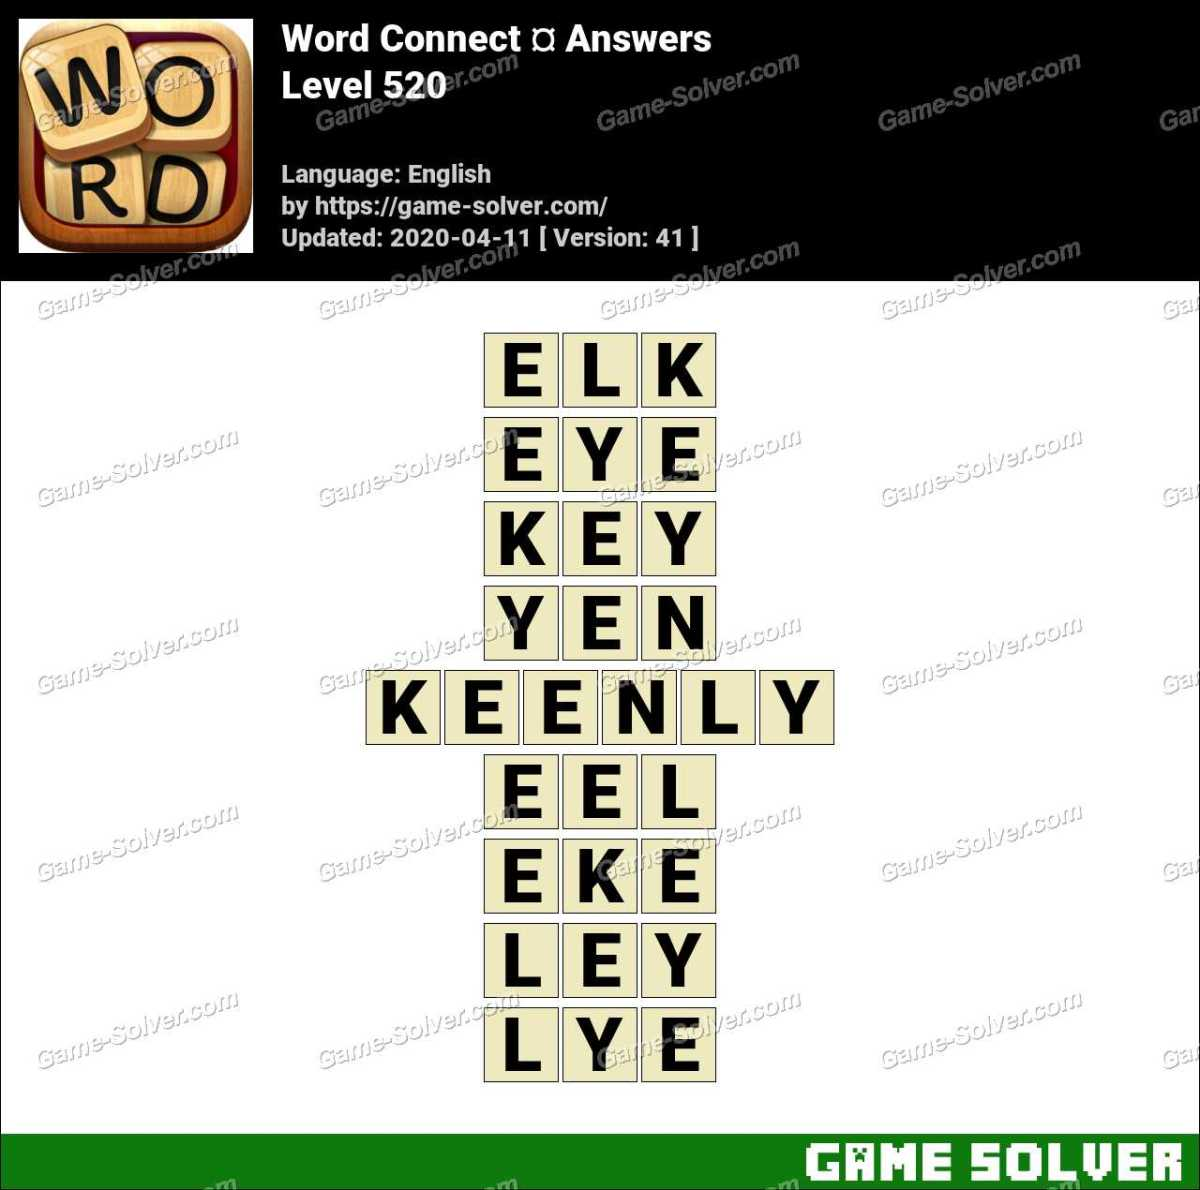 Word Connect Level 520 Answers